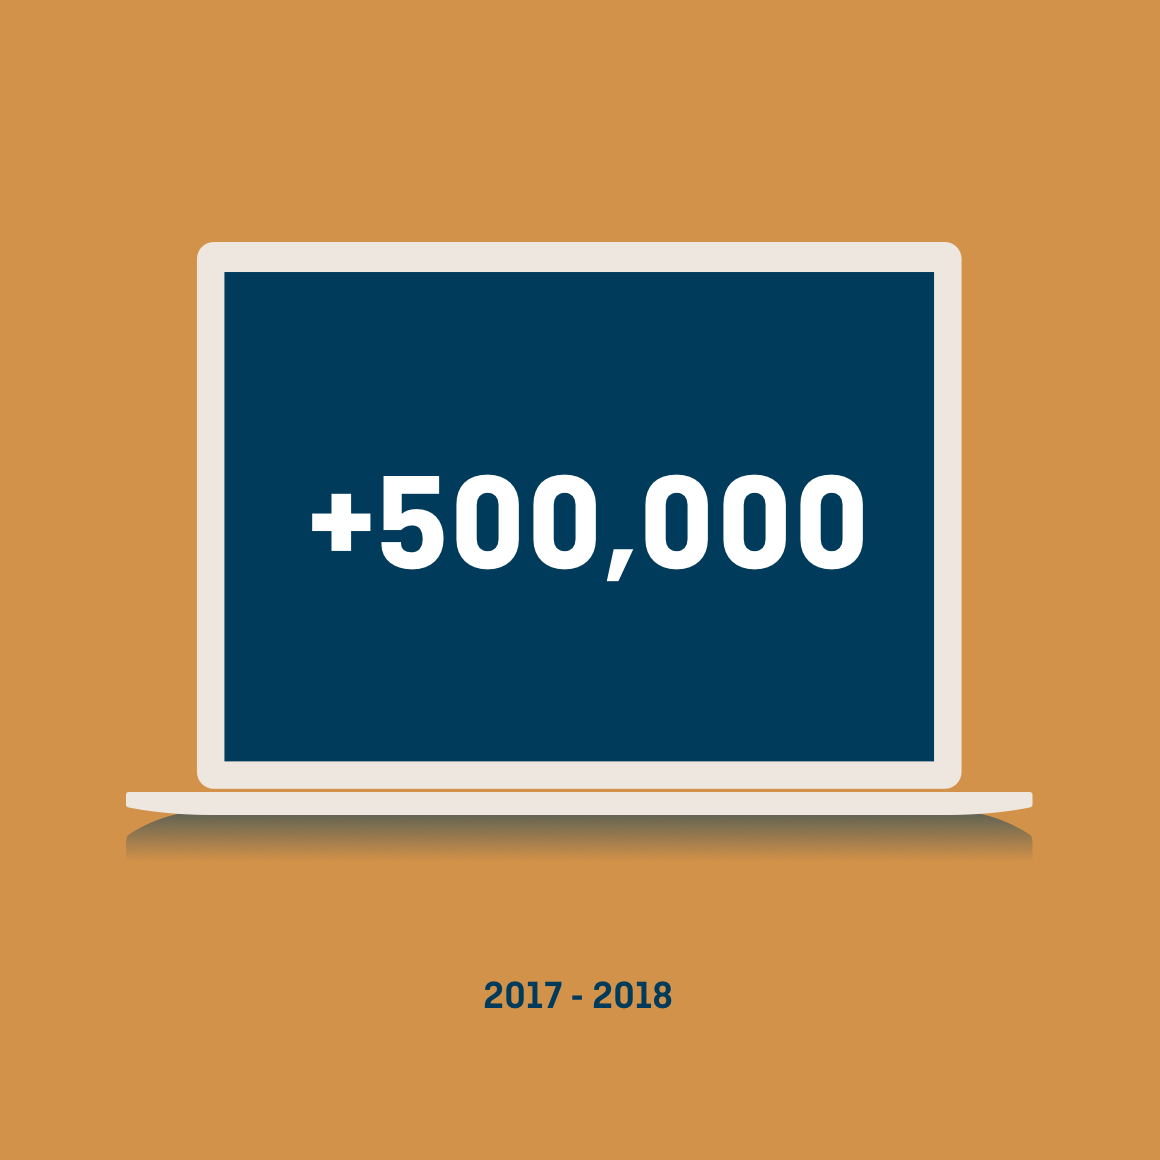 Laptop graphic showing a results impression increase of 500,000 from 2017-2018